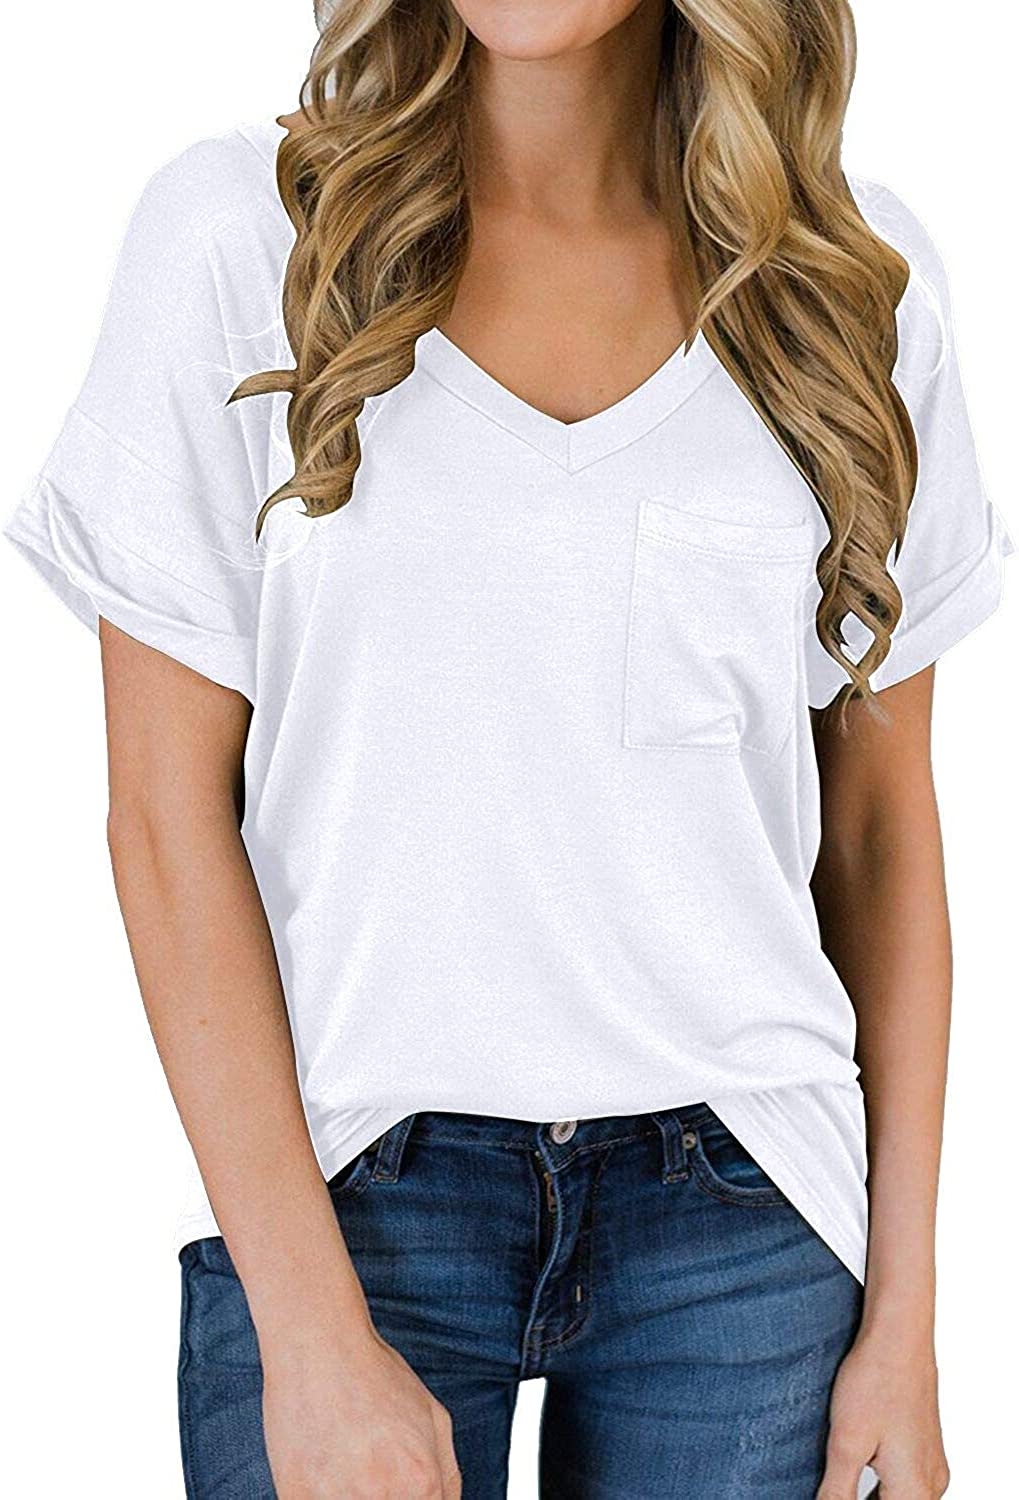 Fashion V-Neck T-Shirts for Women Loose Short Sleeve Hollow Top Tee